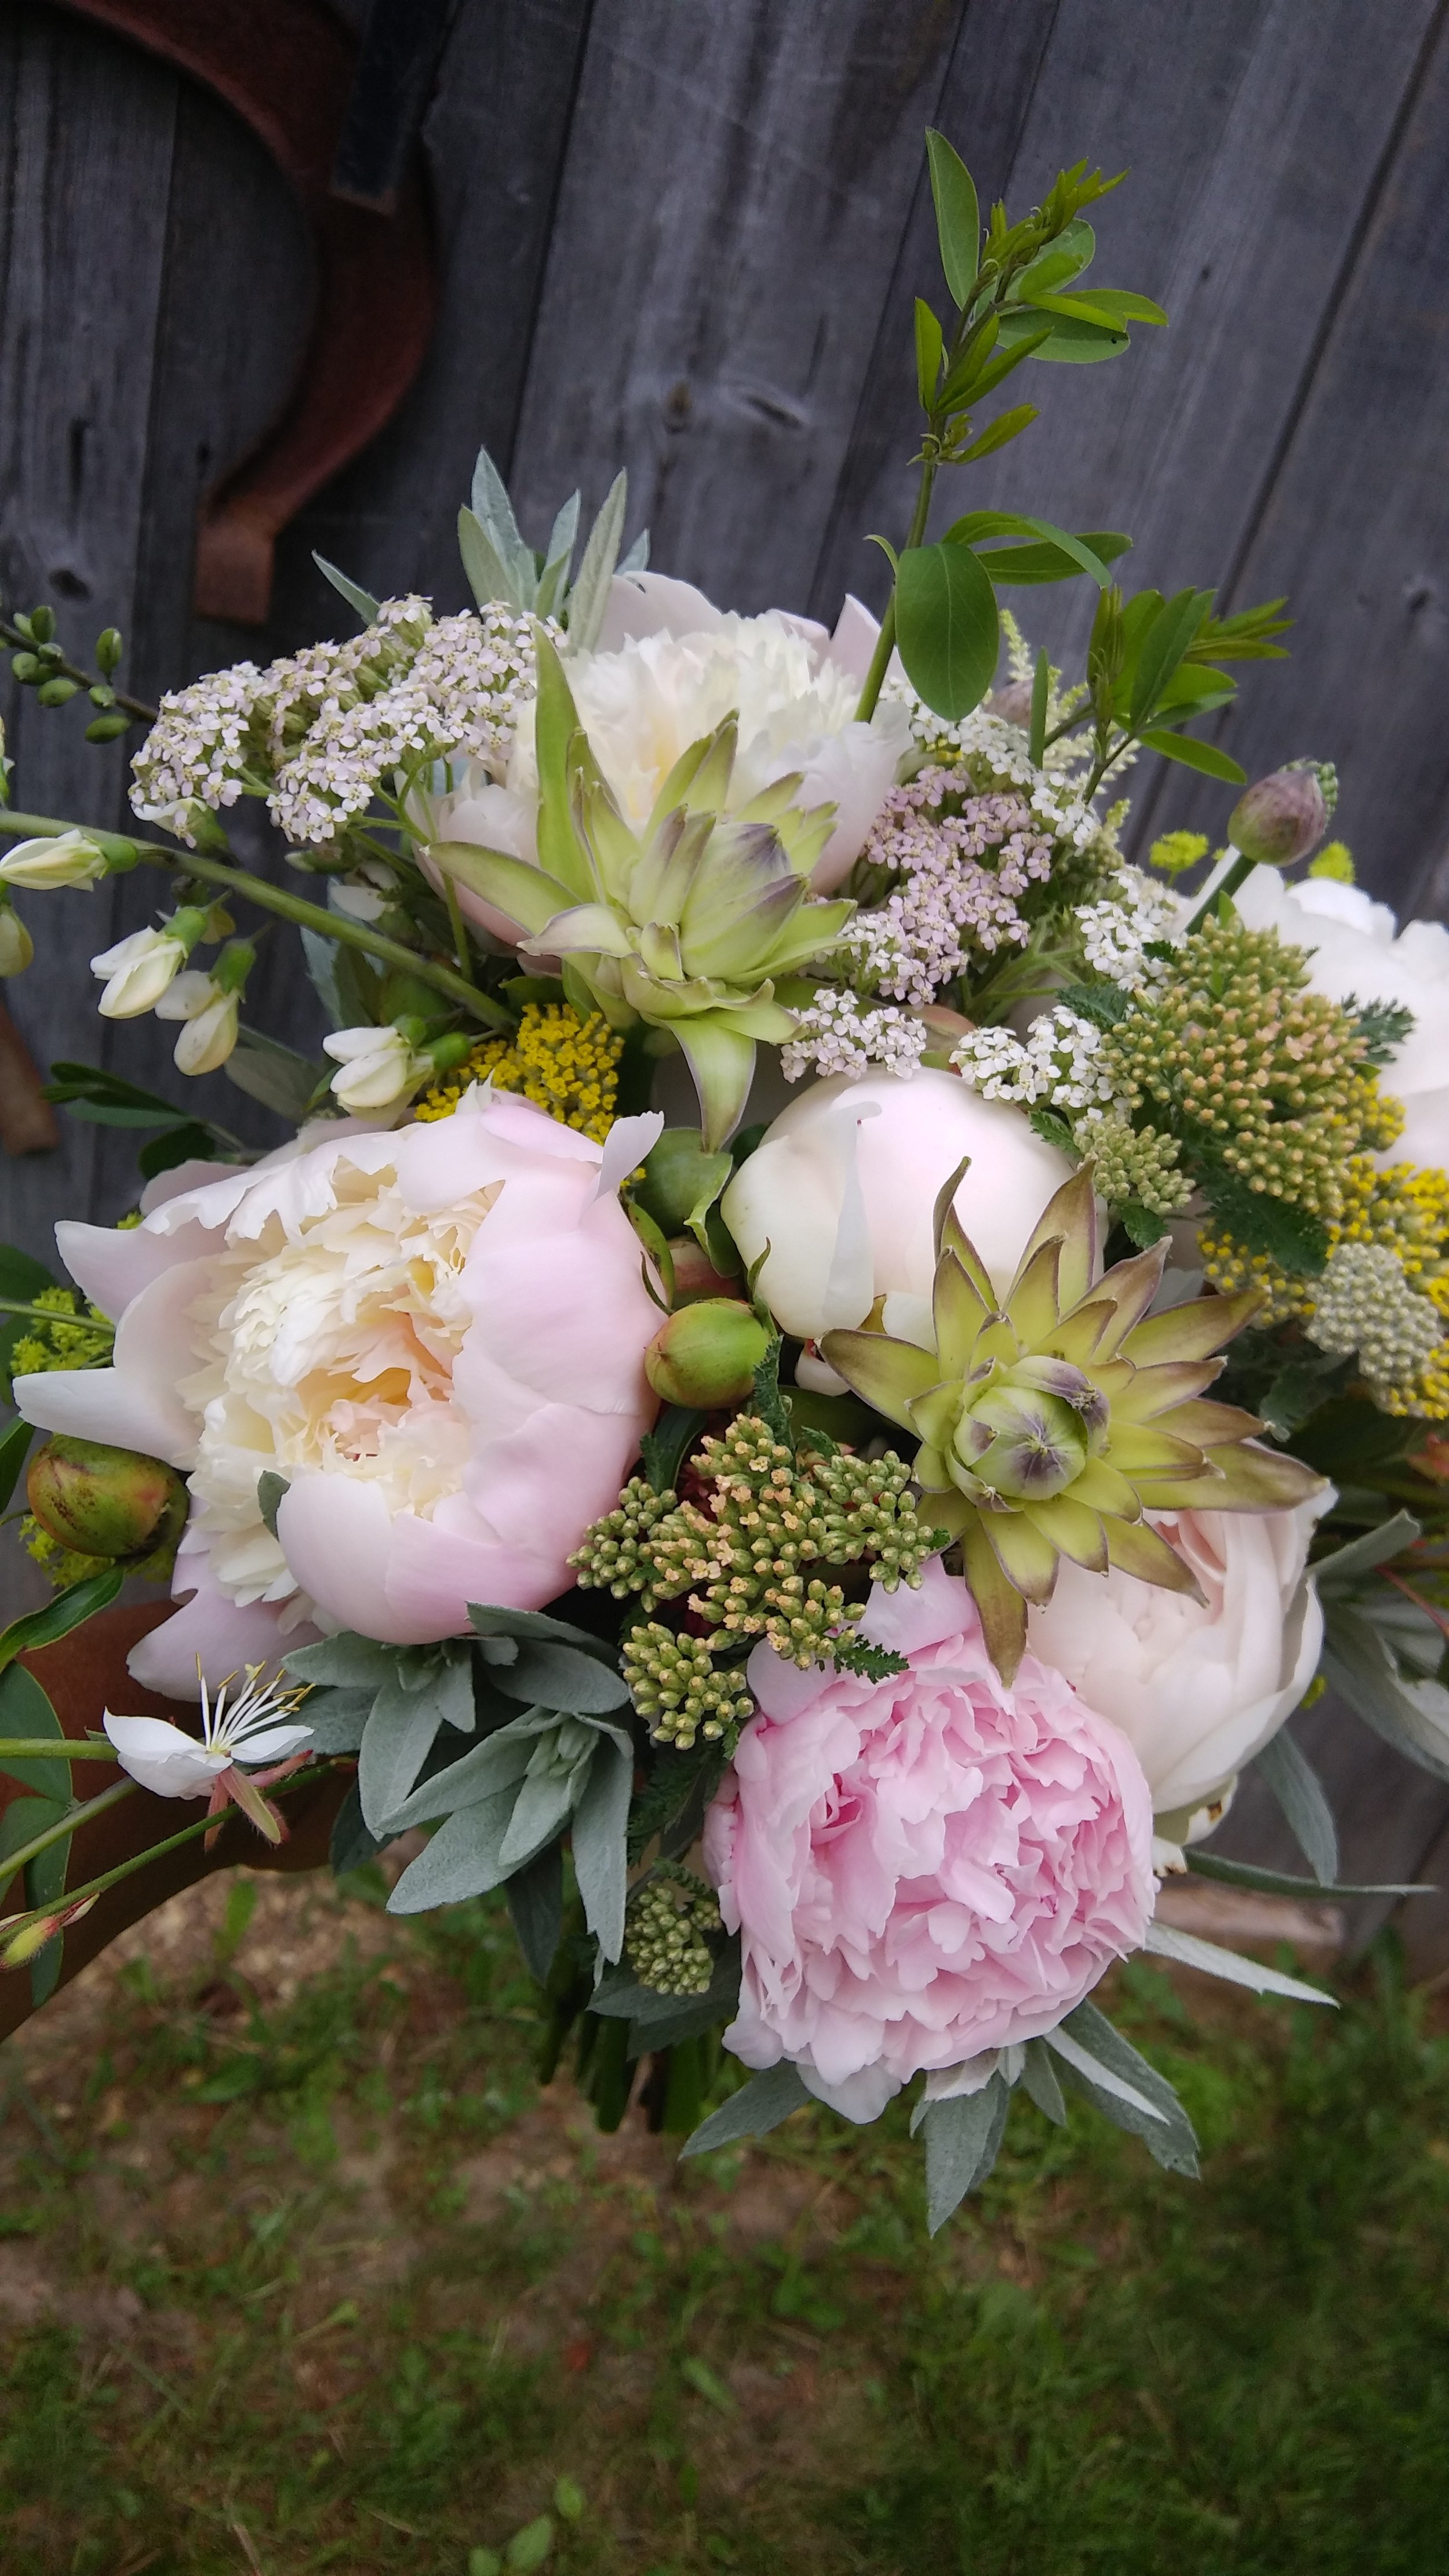 bridal bouquet for mary 6-15-18.jpg